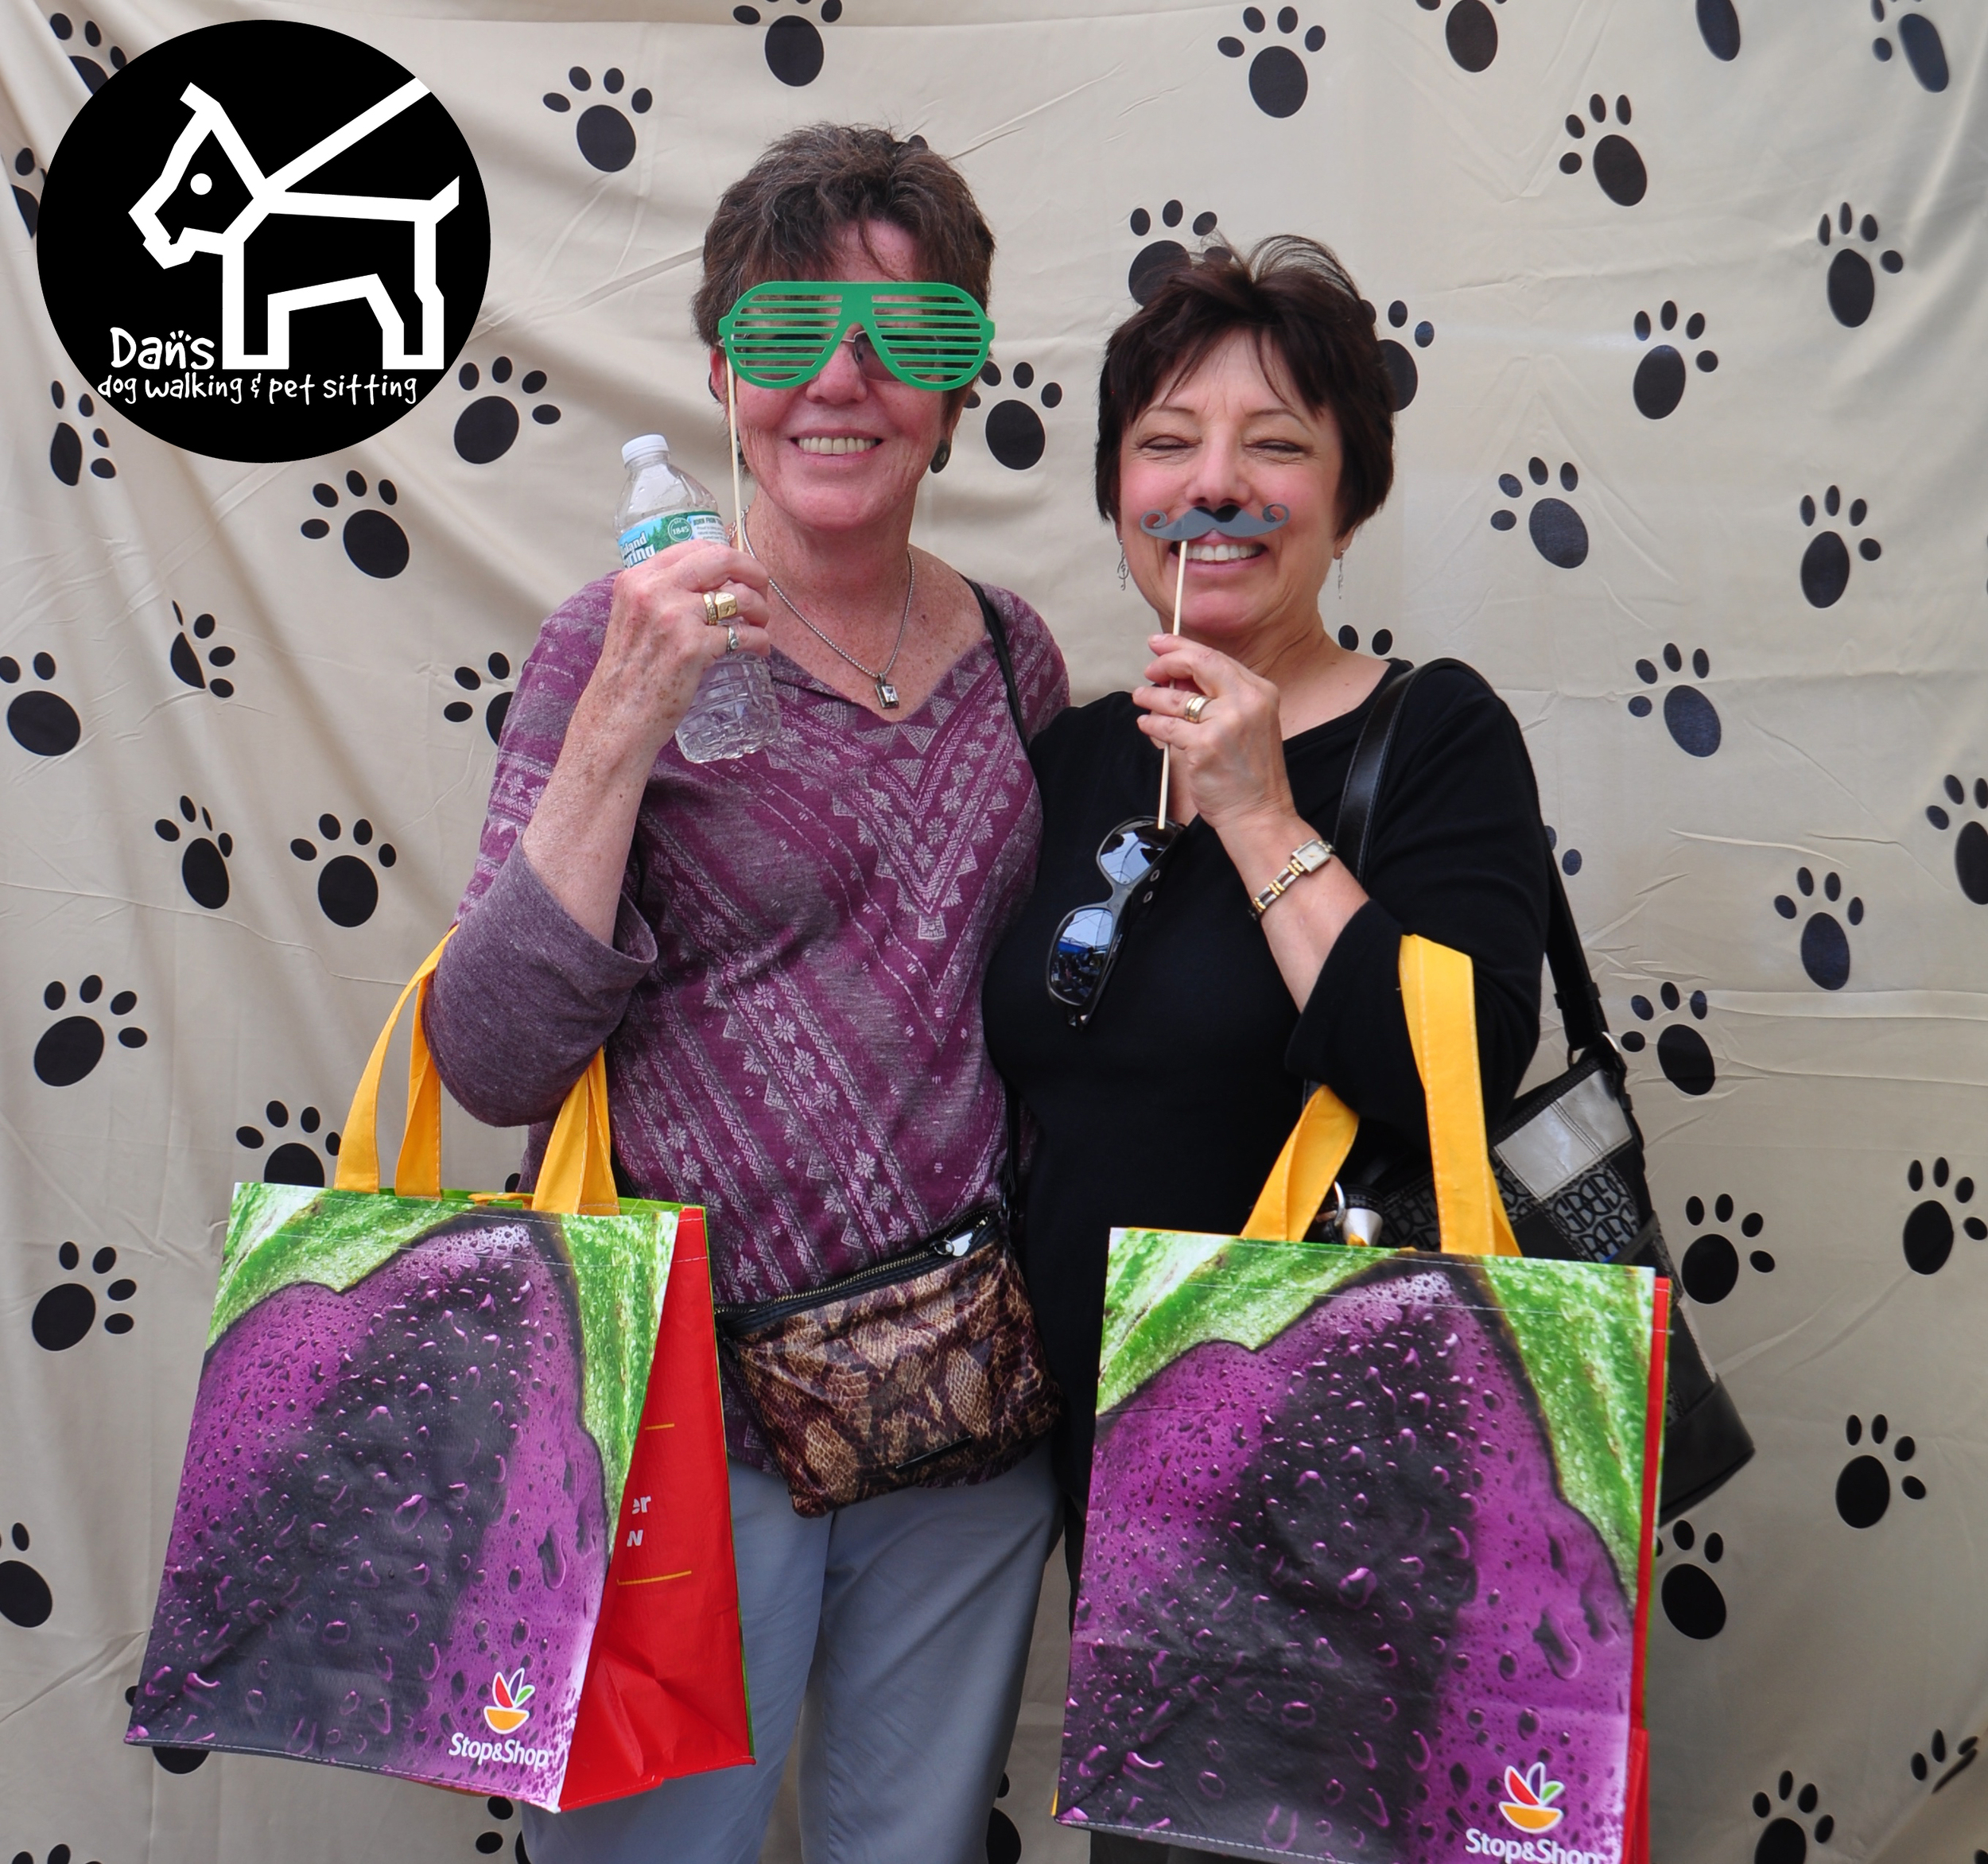 Enjoying the Fun at Dan's Dog Walking and Pet Sitting Doggie Photo Booth at Harbor Fest 2015.jpg